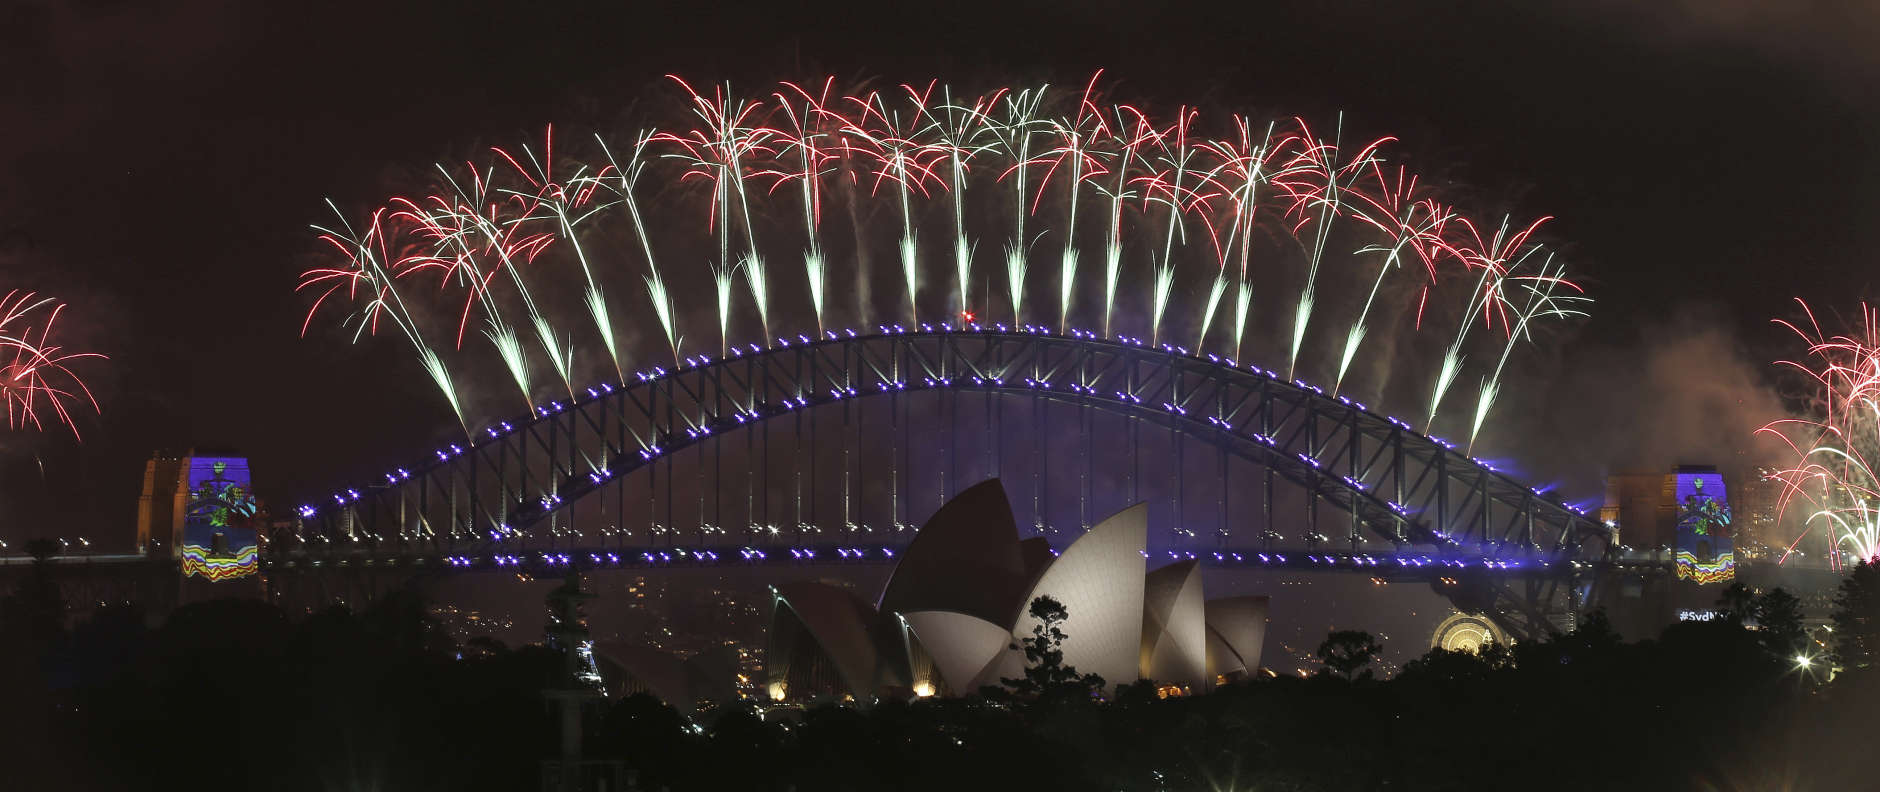 Fireworks explode over the Sydney Opera House and Harbour Bridge as New Year's celebrations are underway in Sydney, Australia, Sunday, Jan. 1, 2017. (AP Photo/Rick Rycroft)